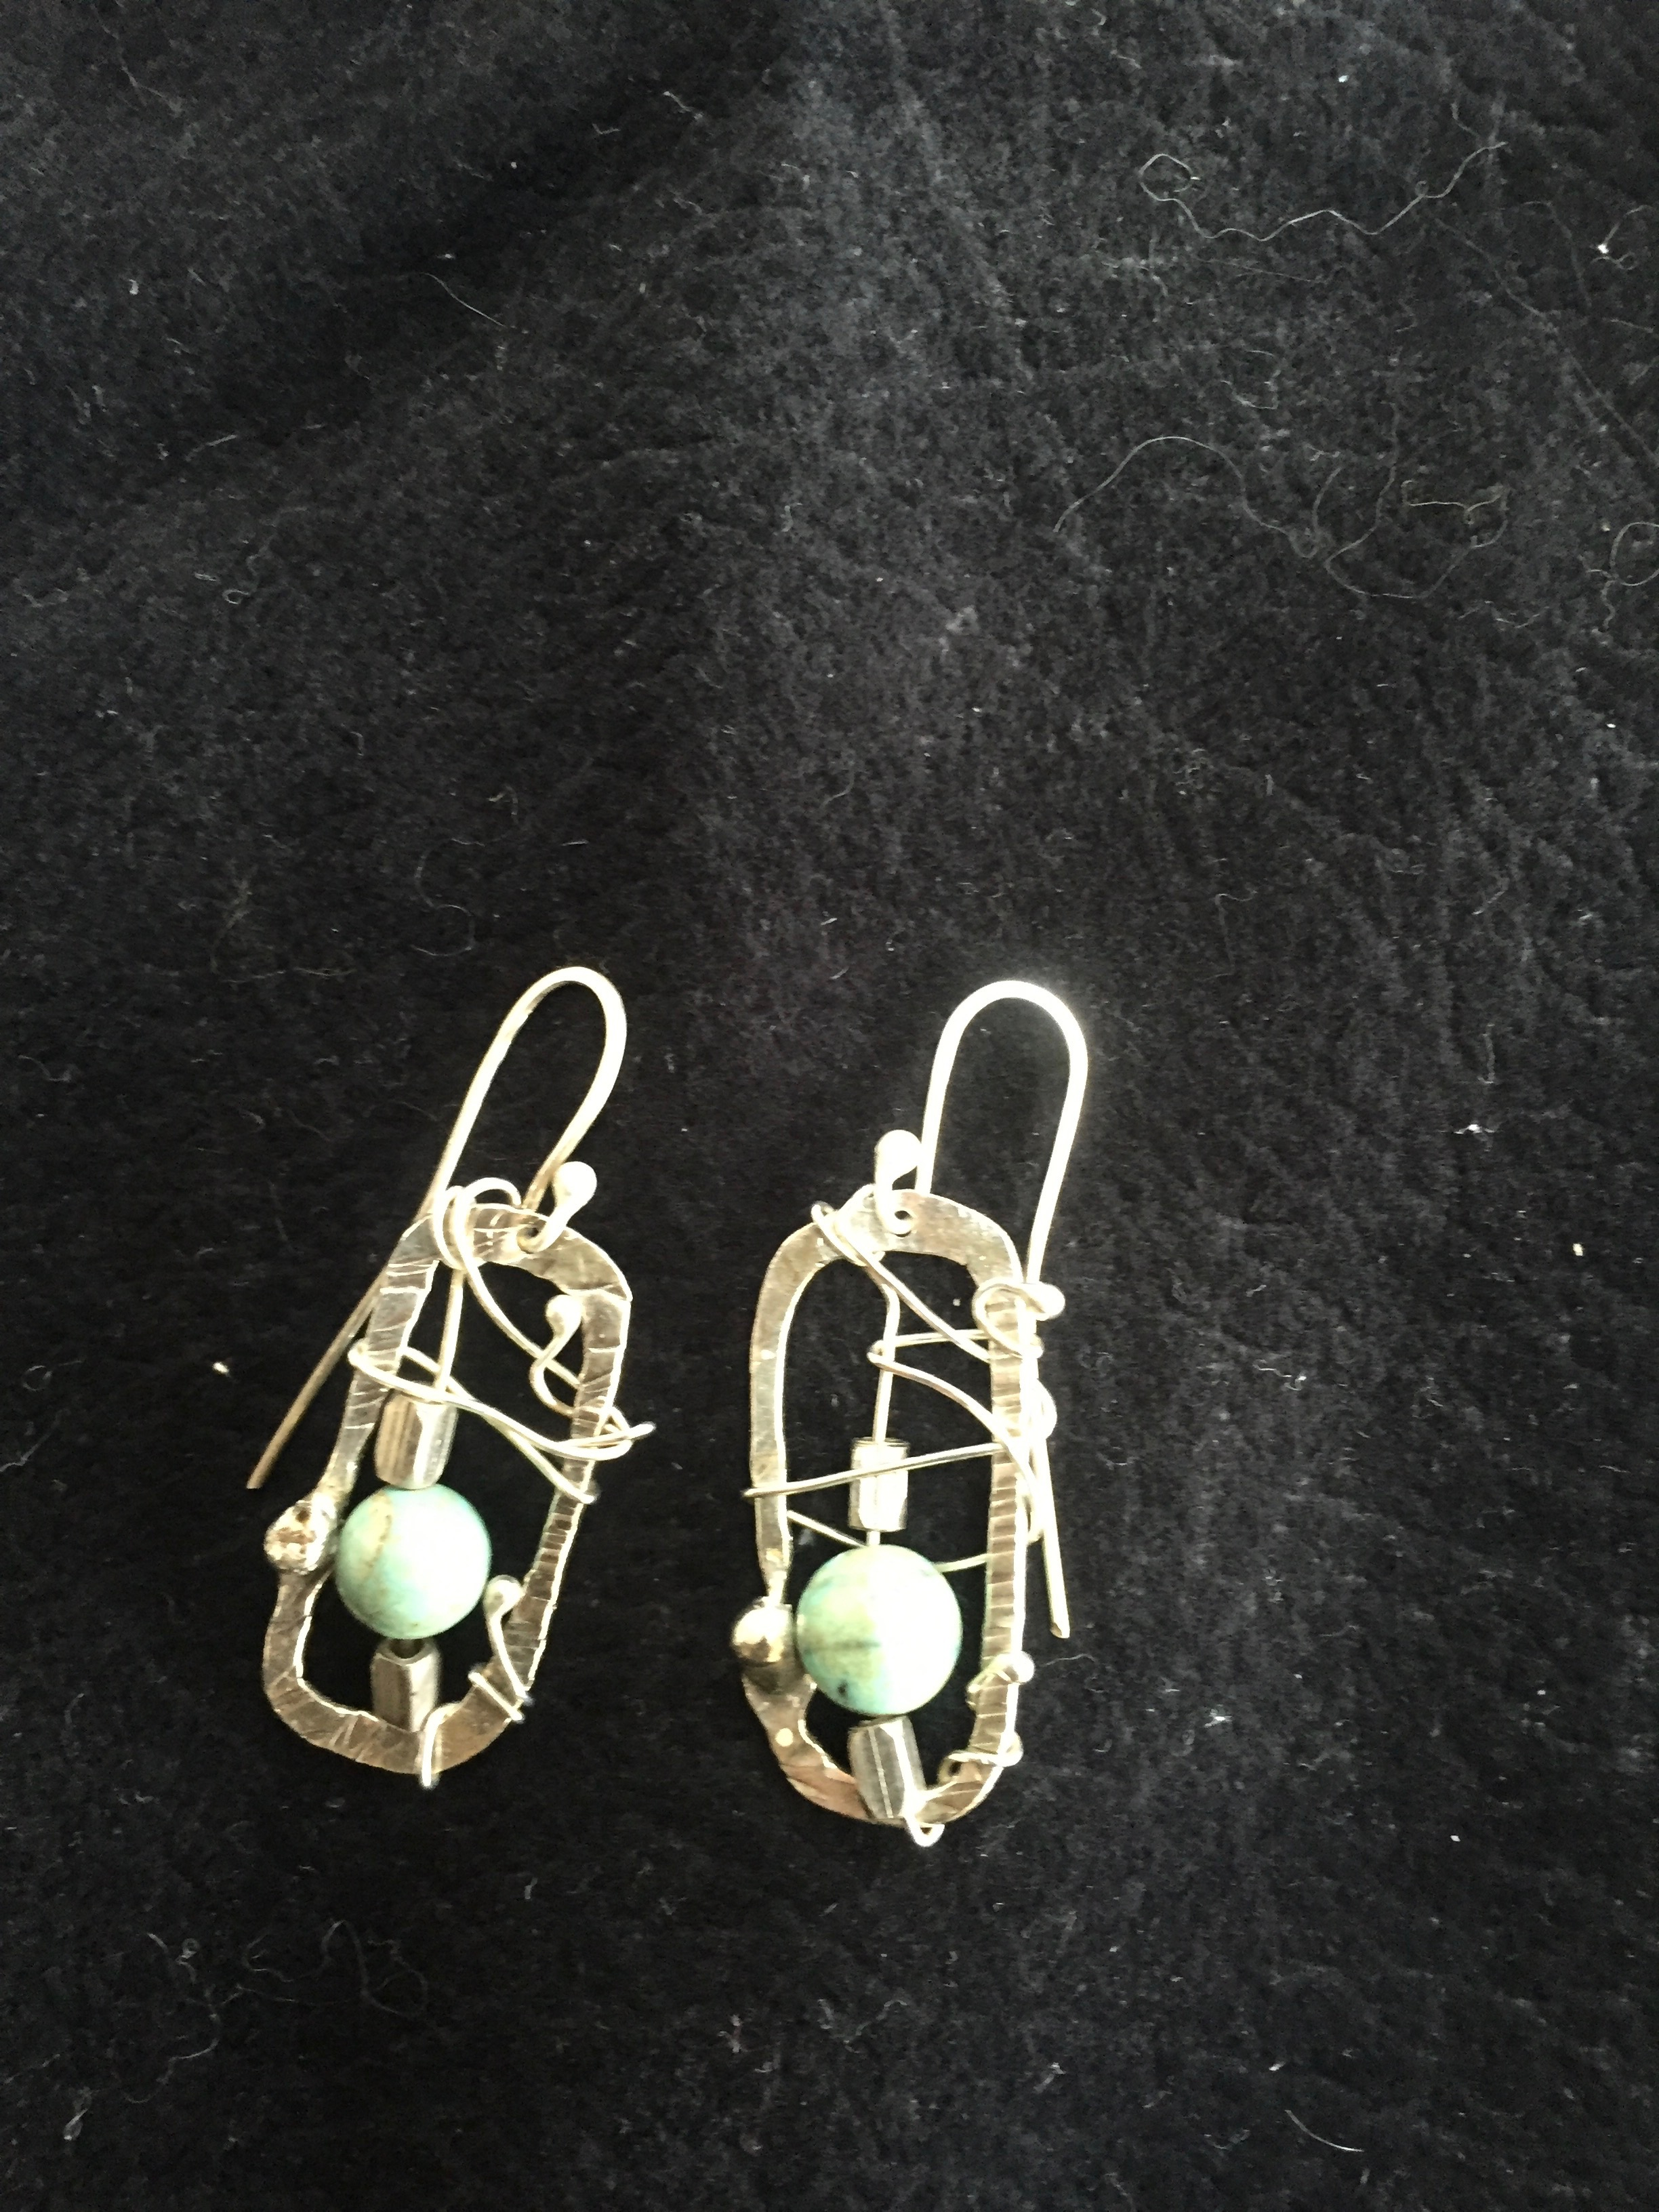 Earrings no.2   $65